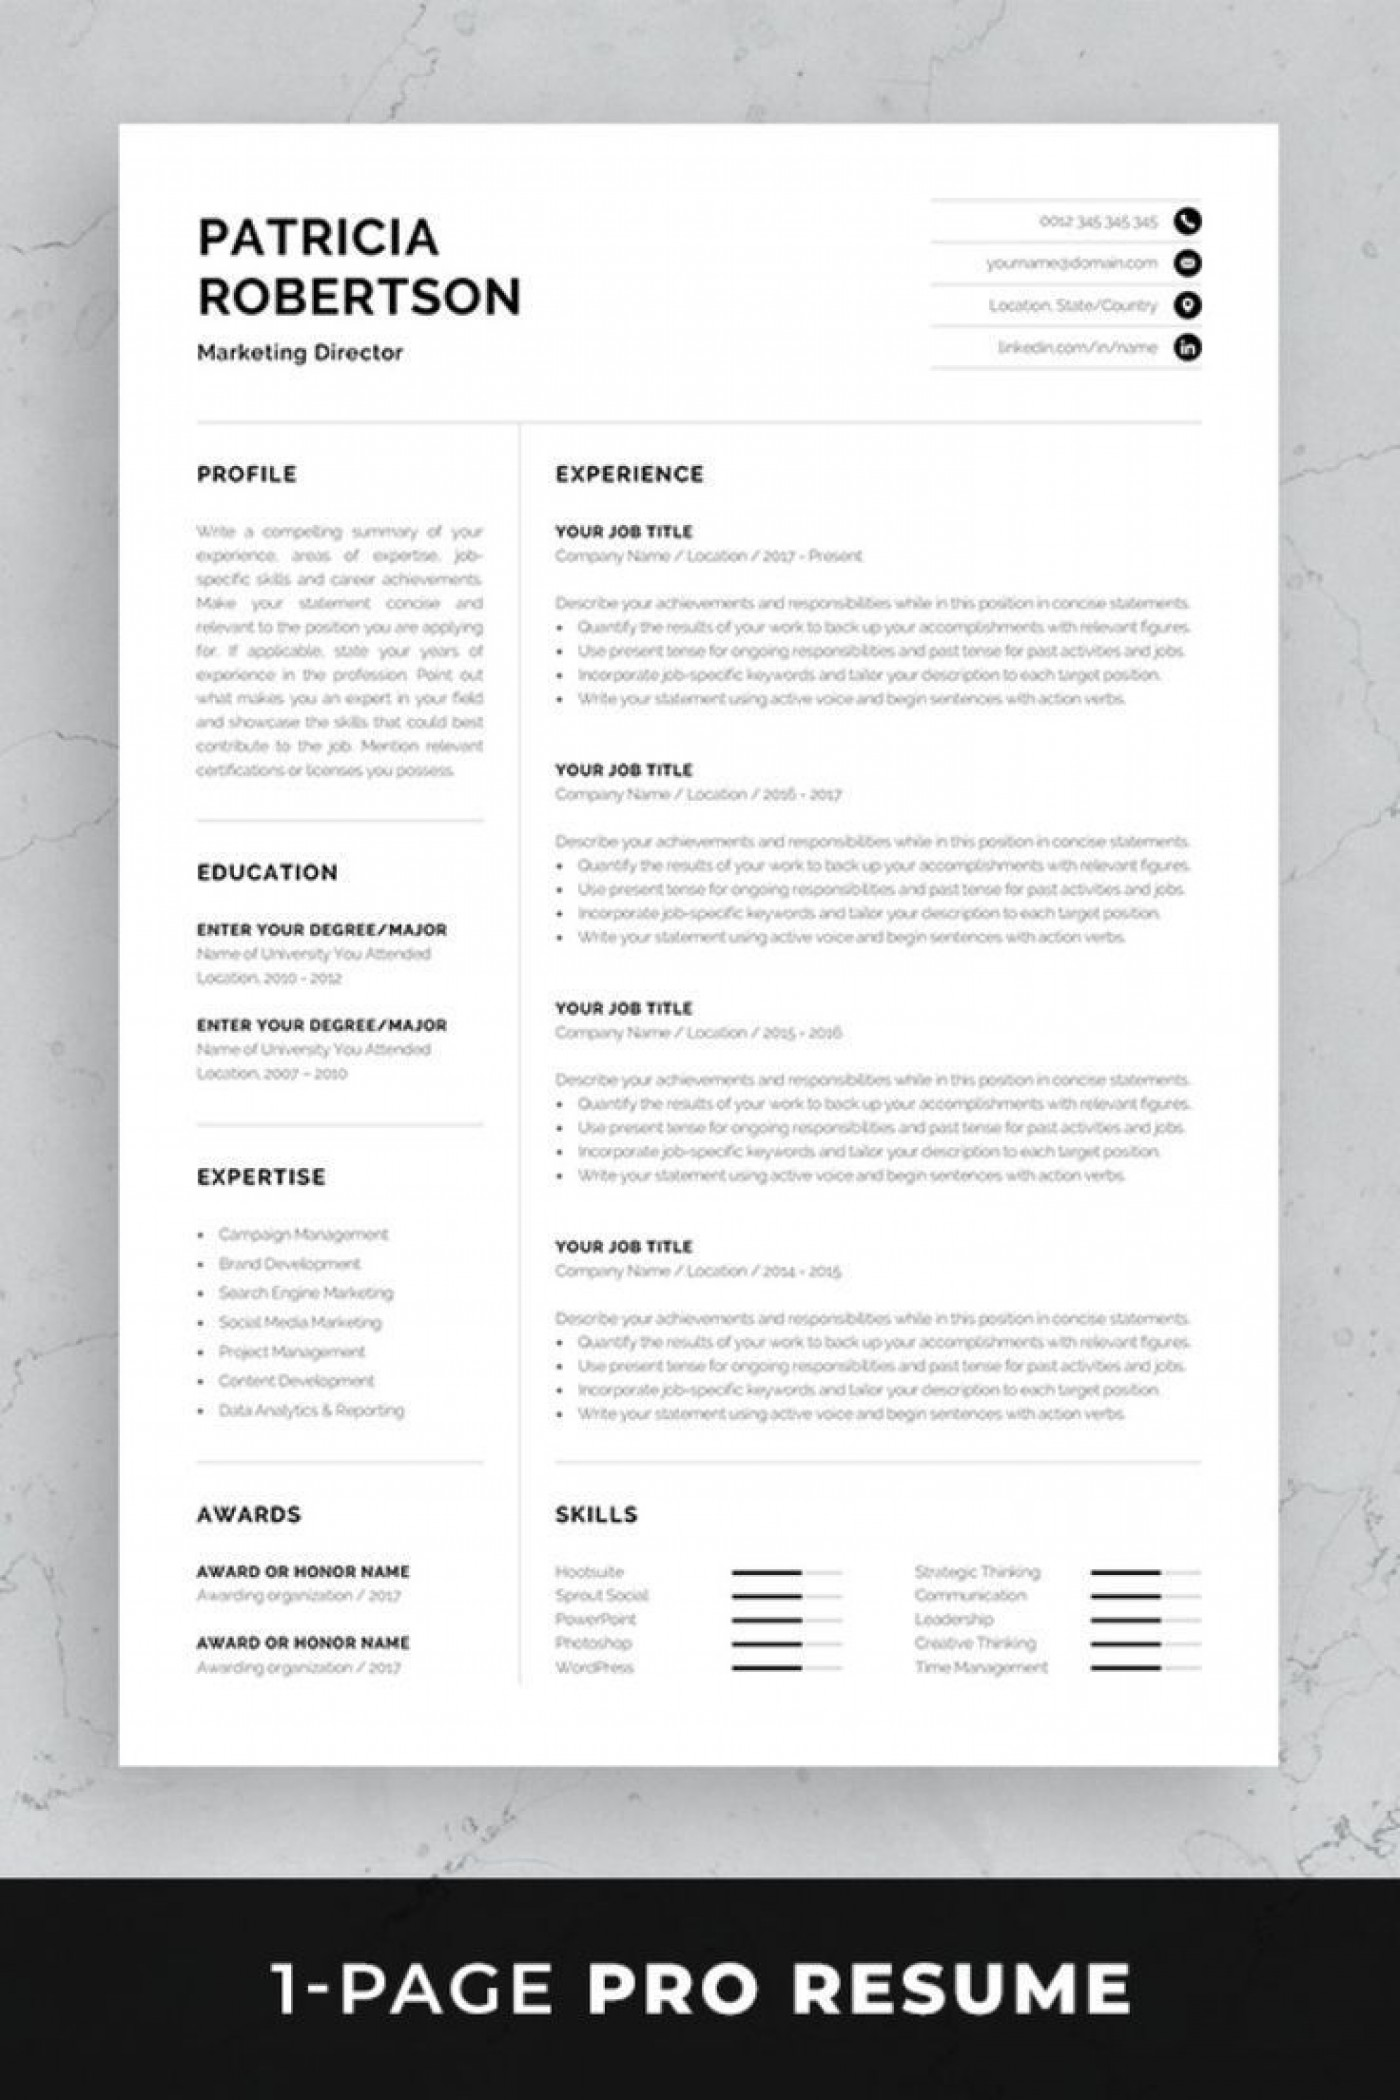 002 Impressive One Page Resume Template Photo  Word Free For Fresher Ppt Download Html1400